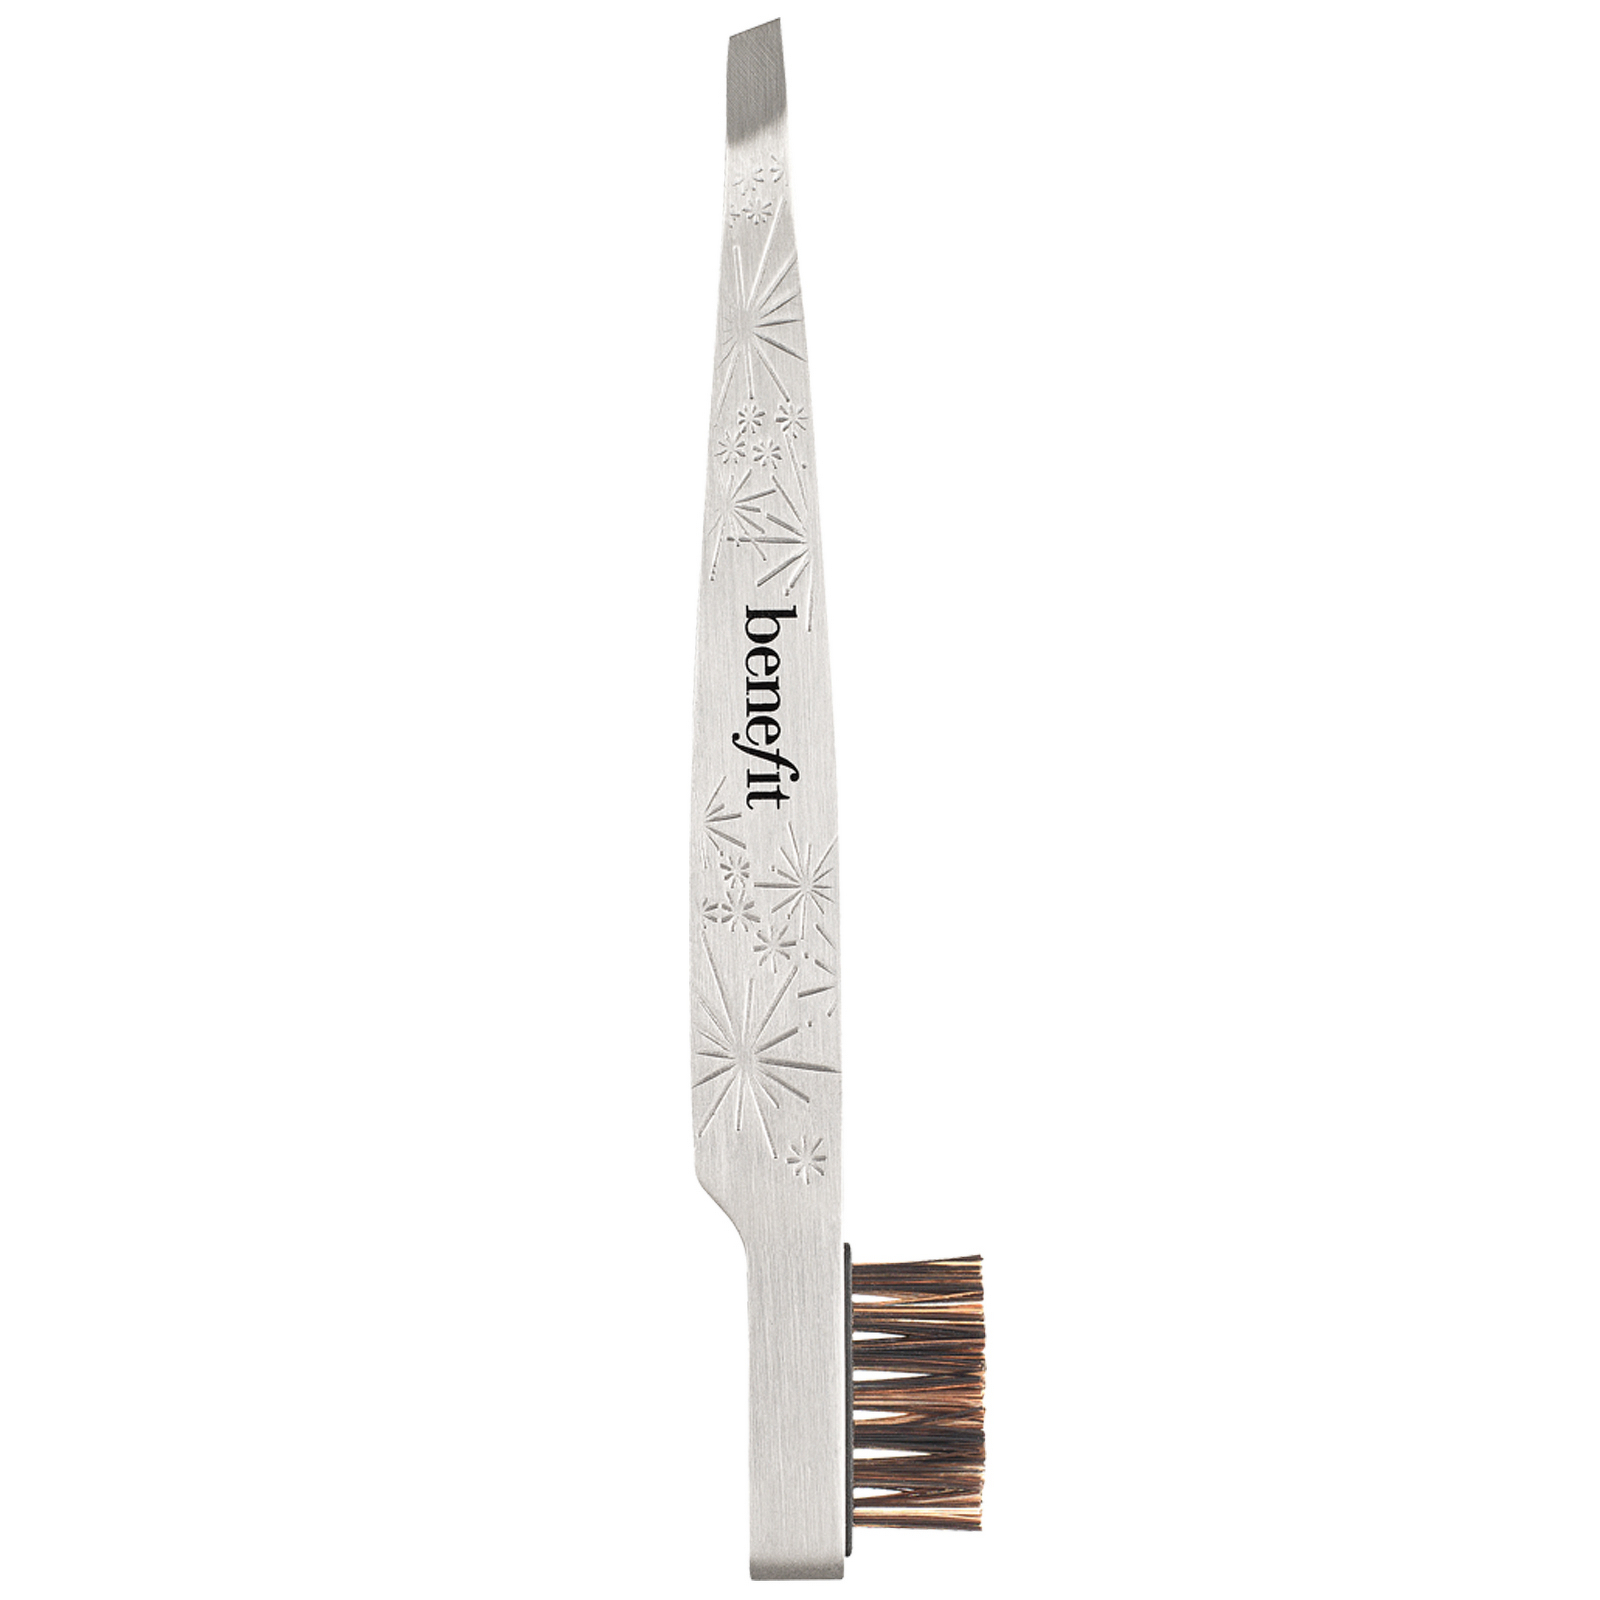 benefit Tools & Brushes Grooming Tweezer & Brush